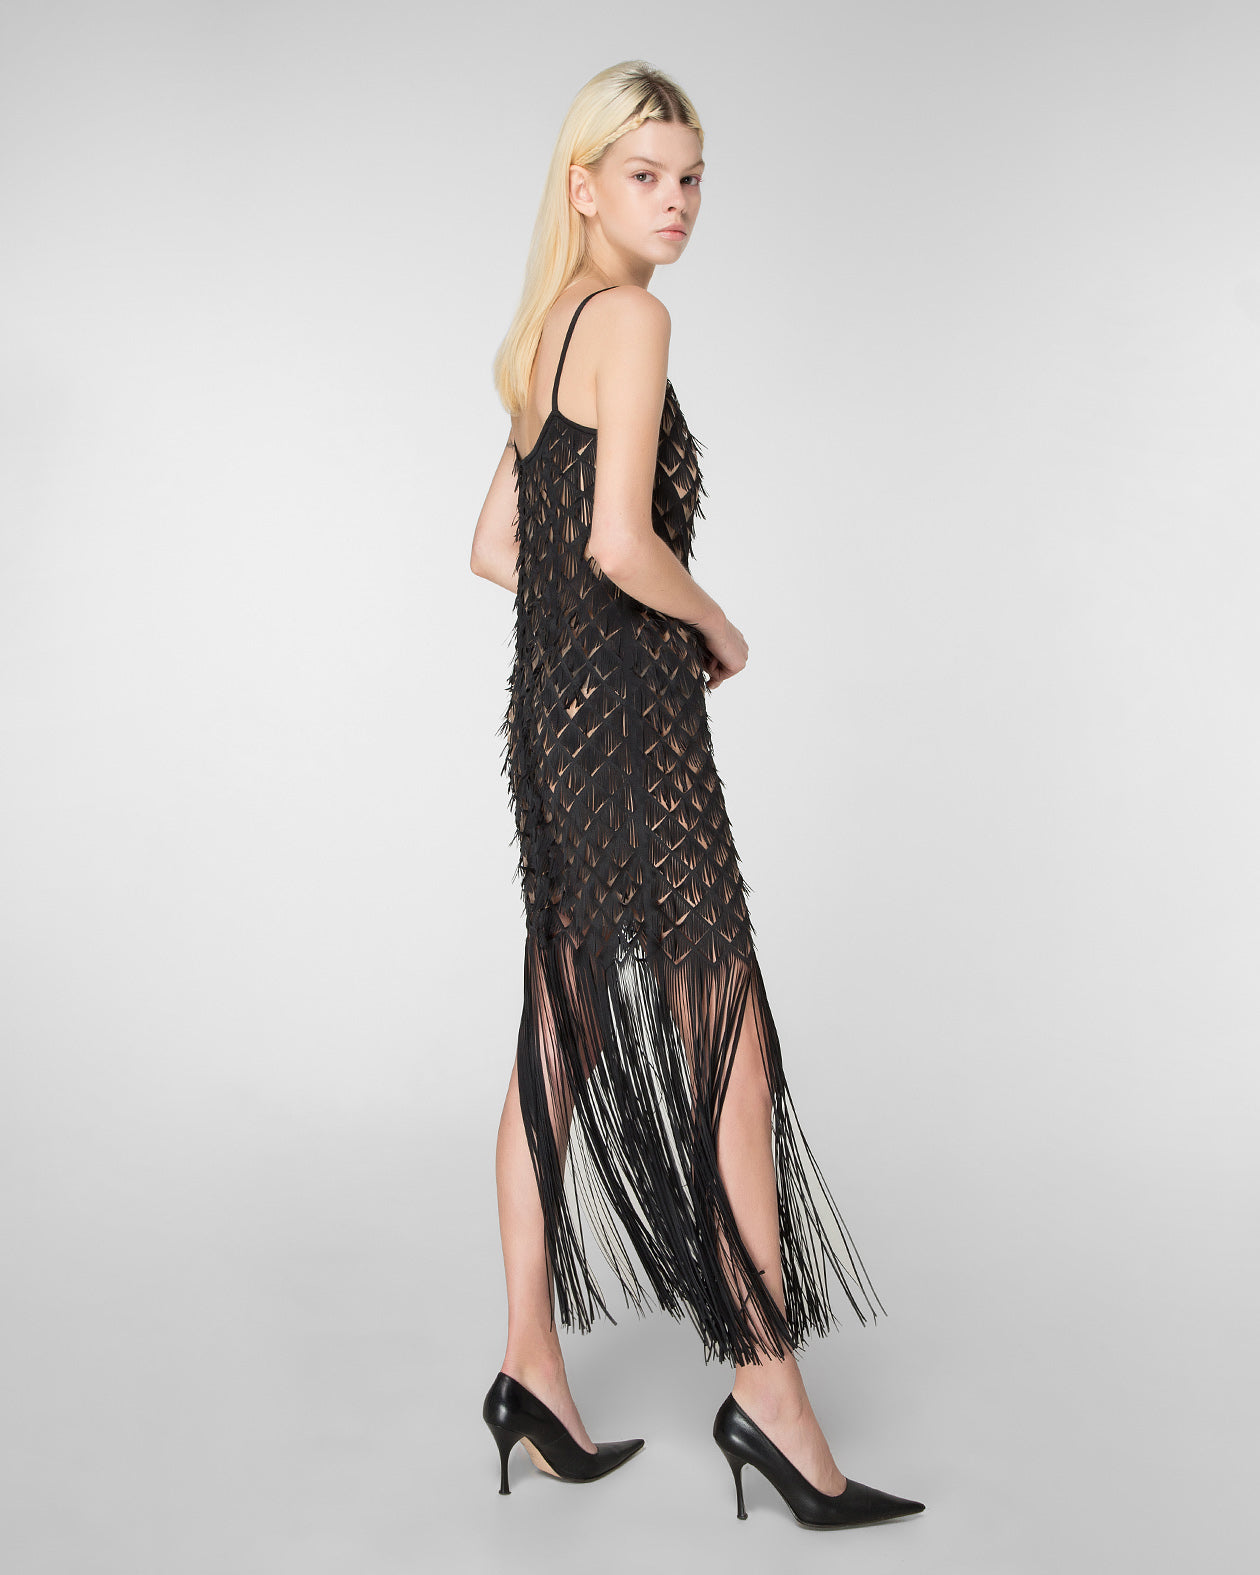 Shoulder strap laser-cut dress with fringe hem